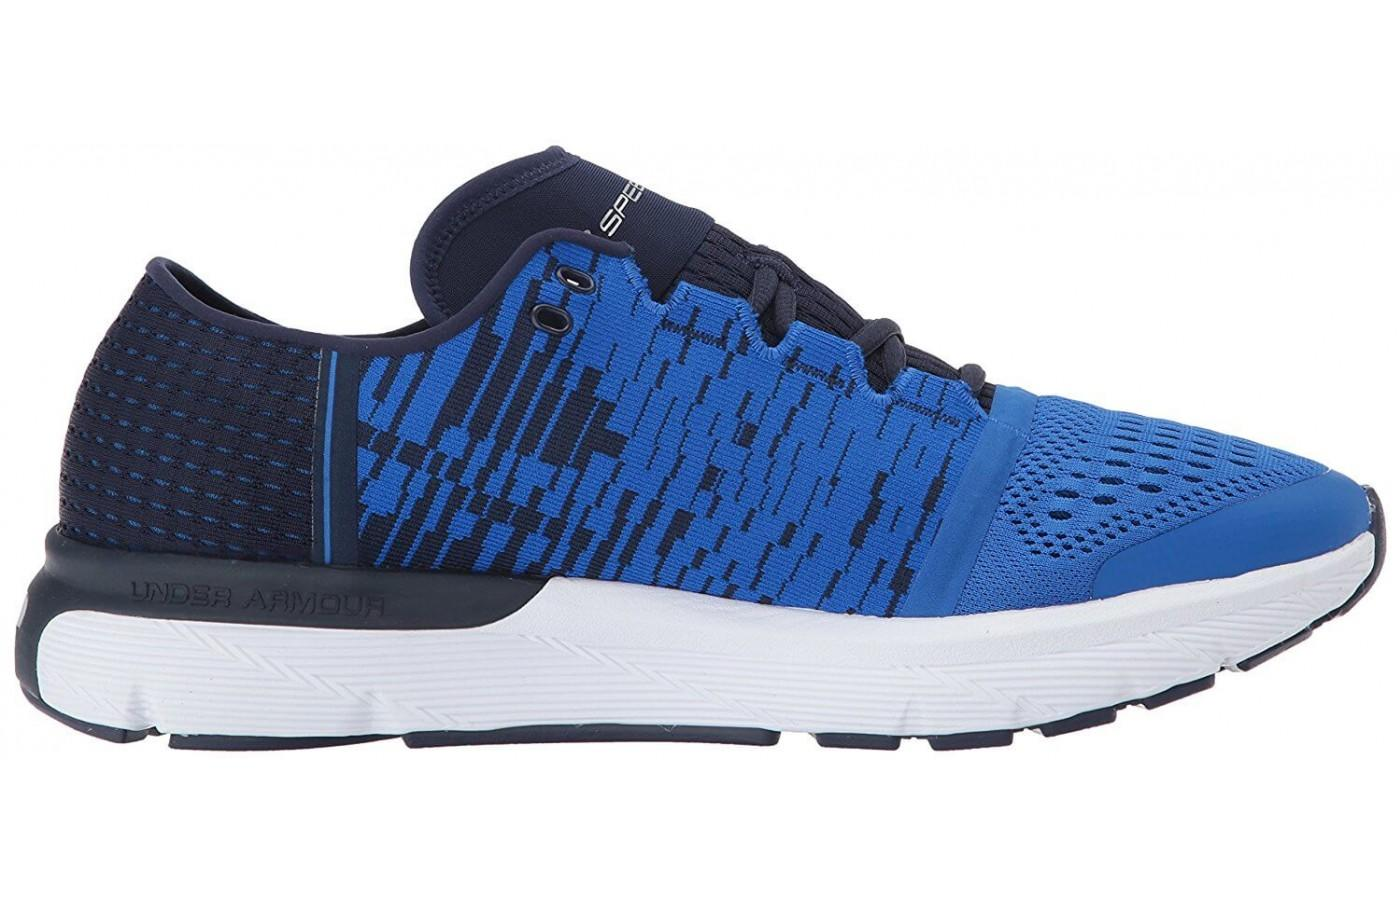 The Under Armour Speedform Gemini comes in a wide variety of colors and styles